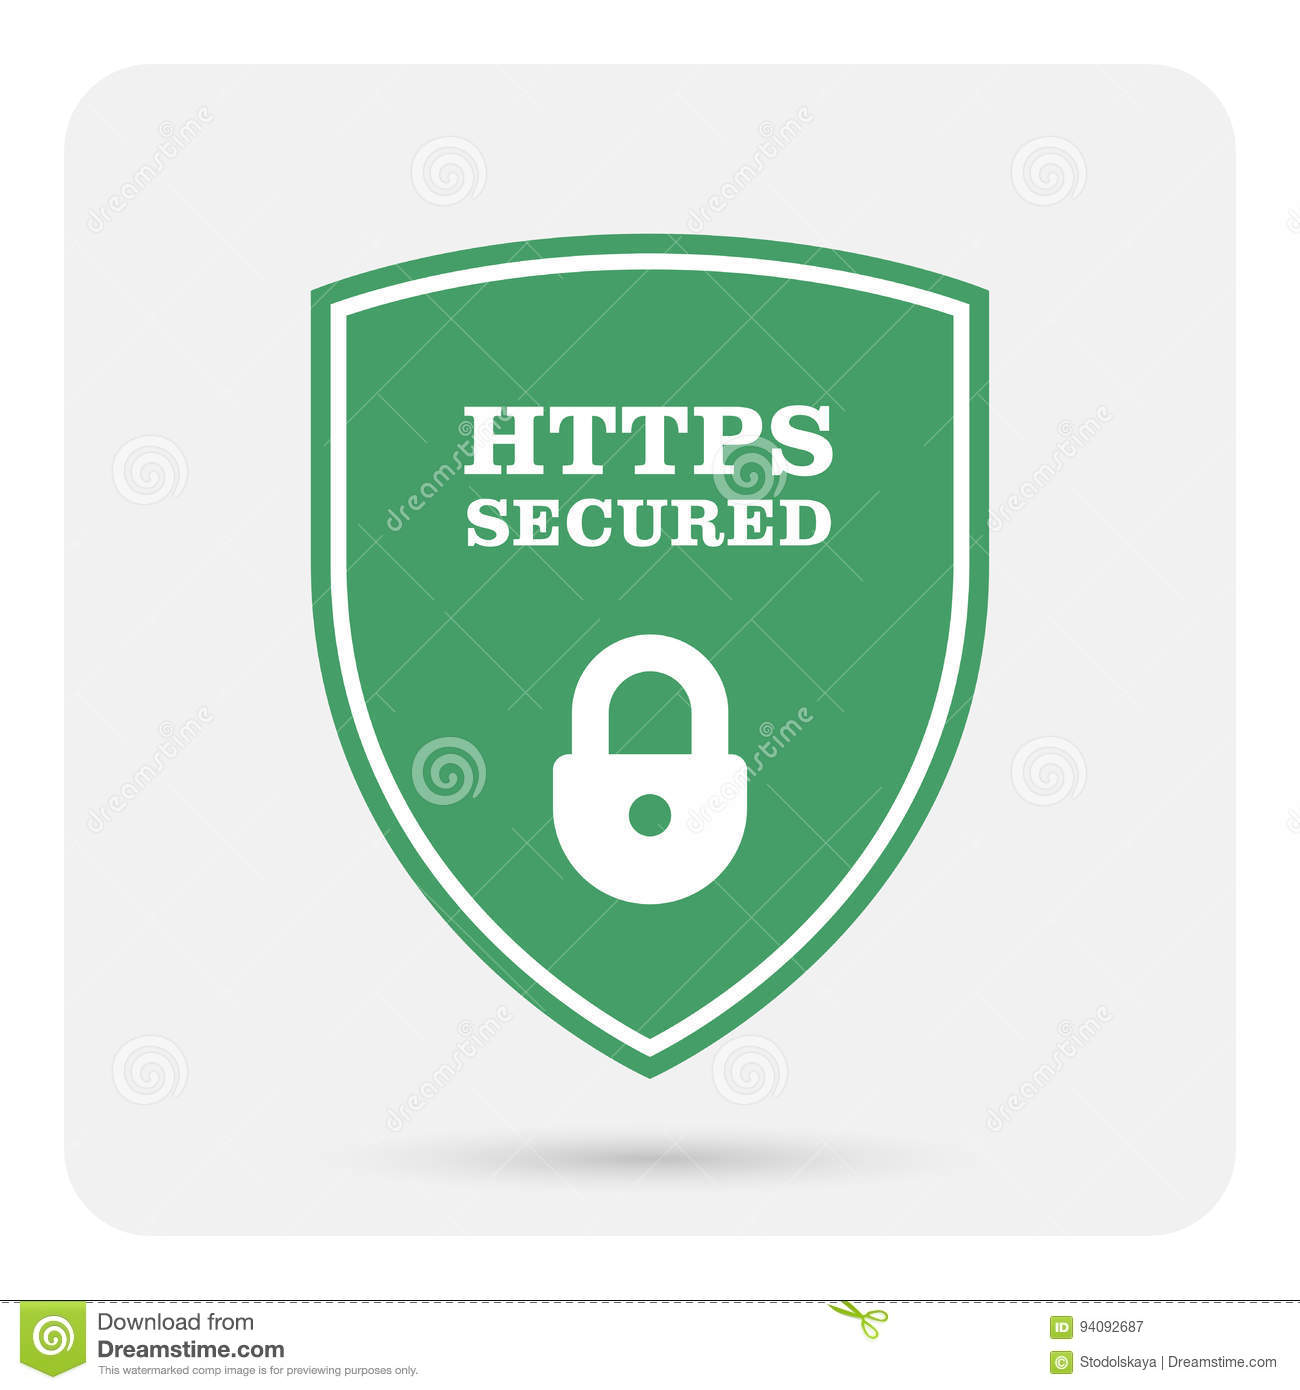 Https Secure Website Ssl Certificate Shield With Padlock Stock